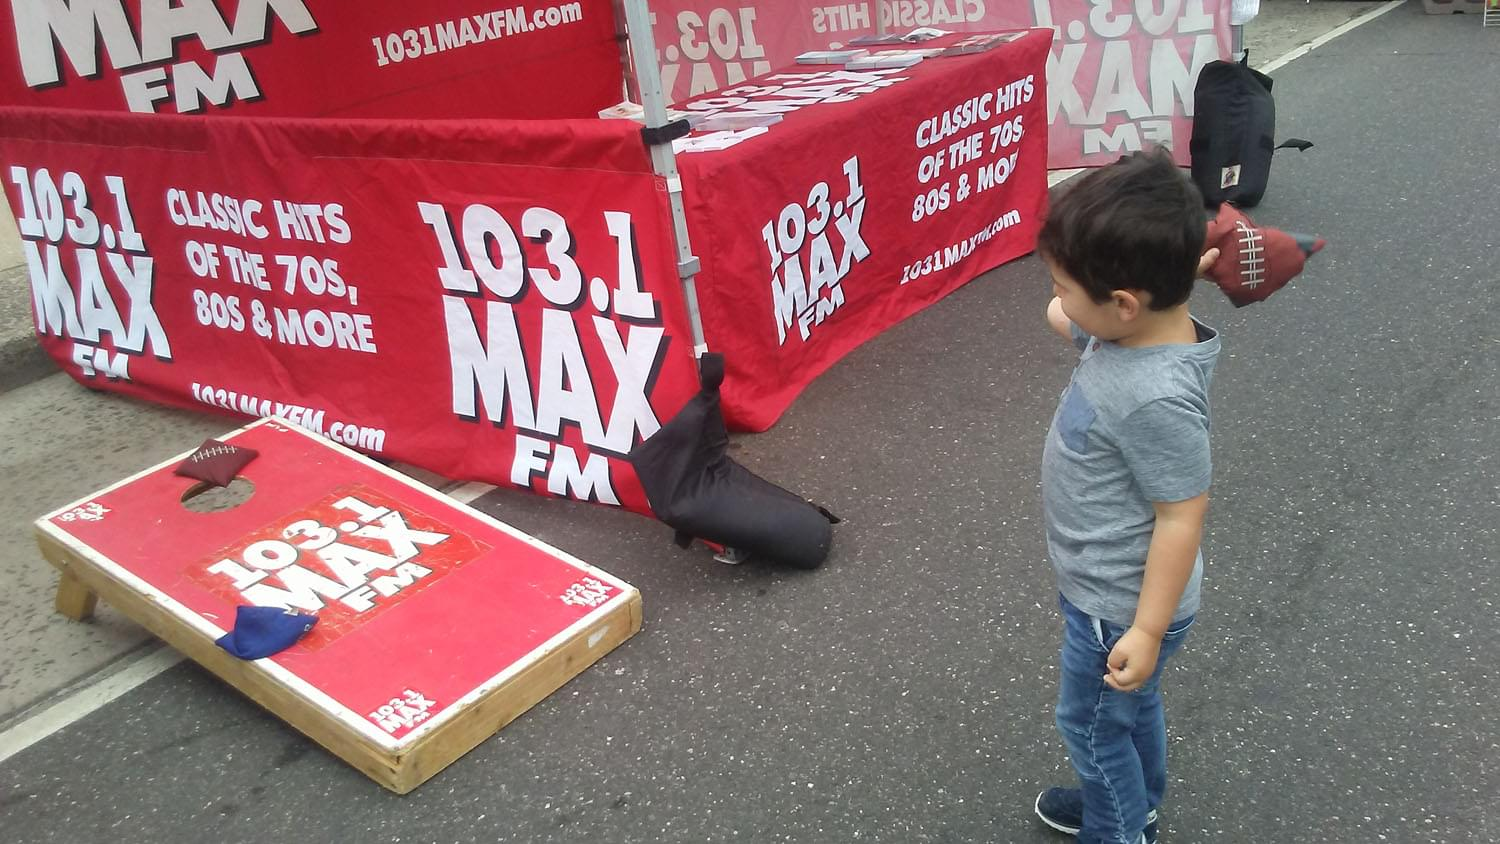 103.1 MAX FM at the Great Neck Street Fair